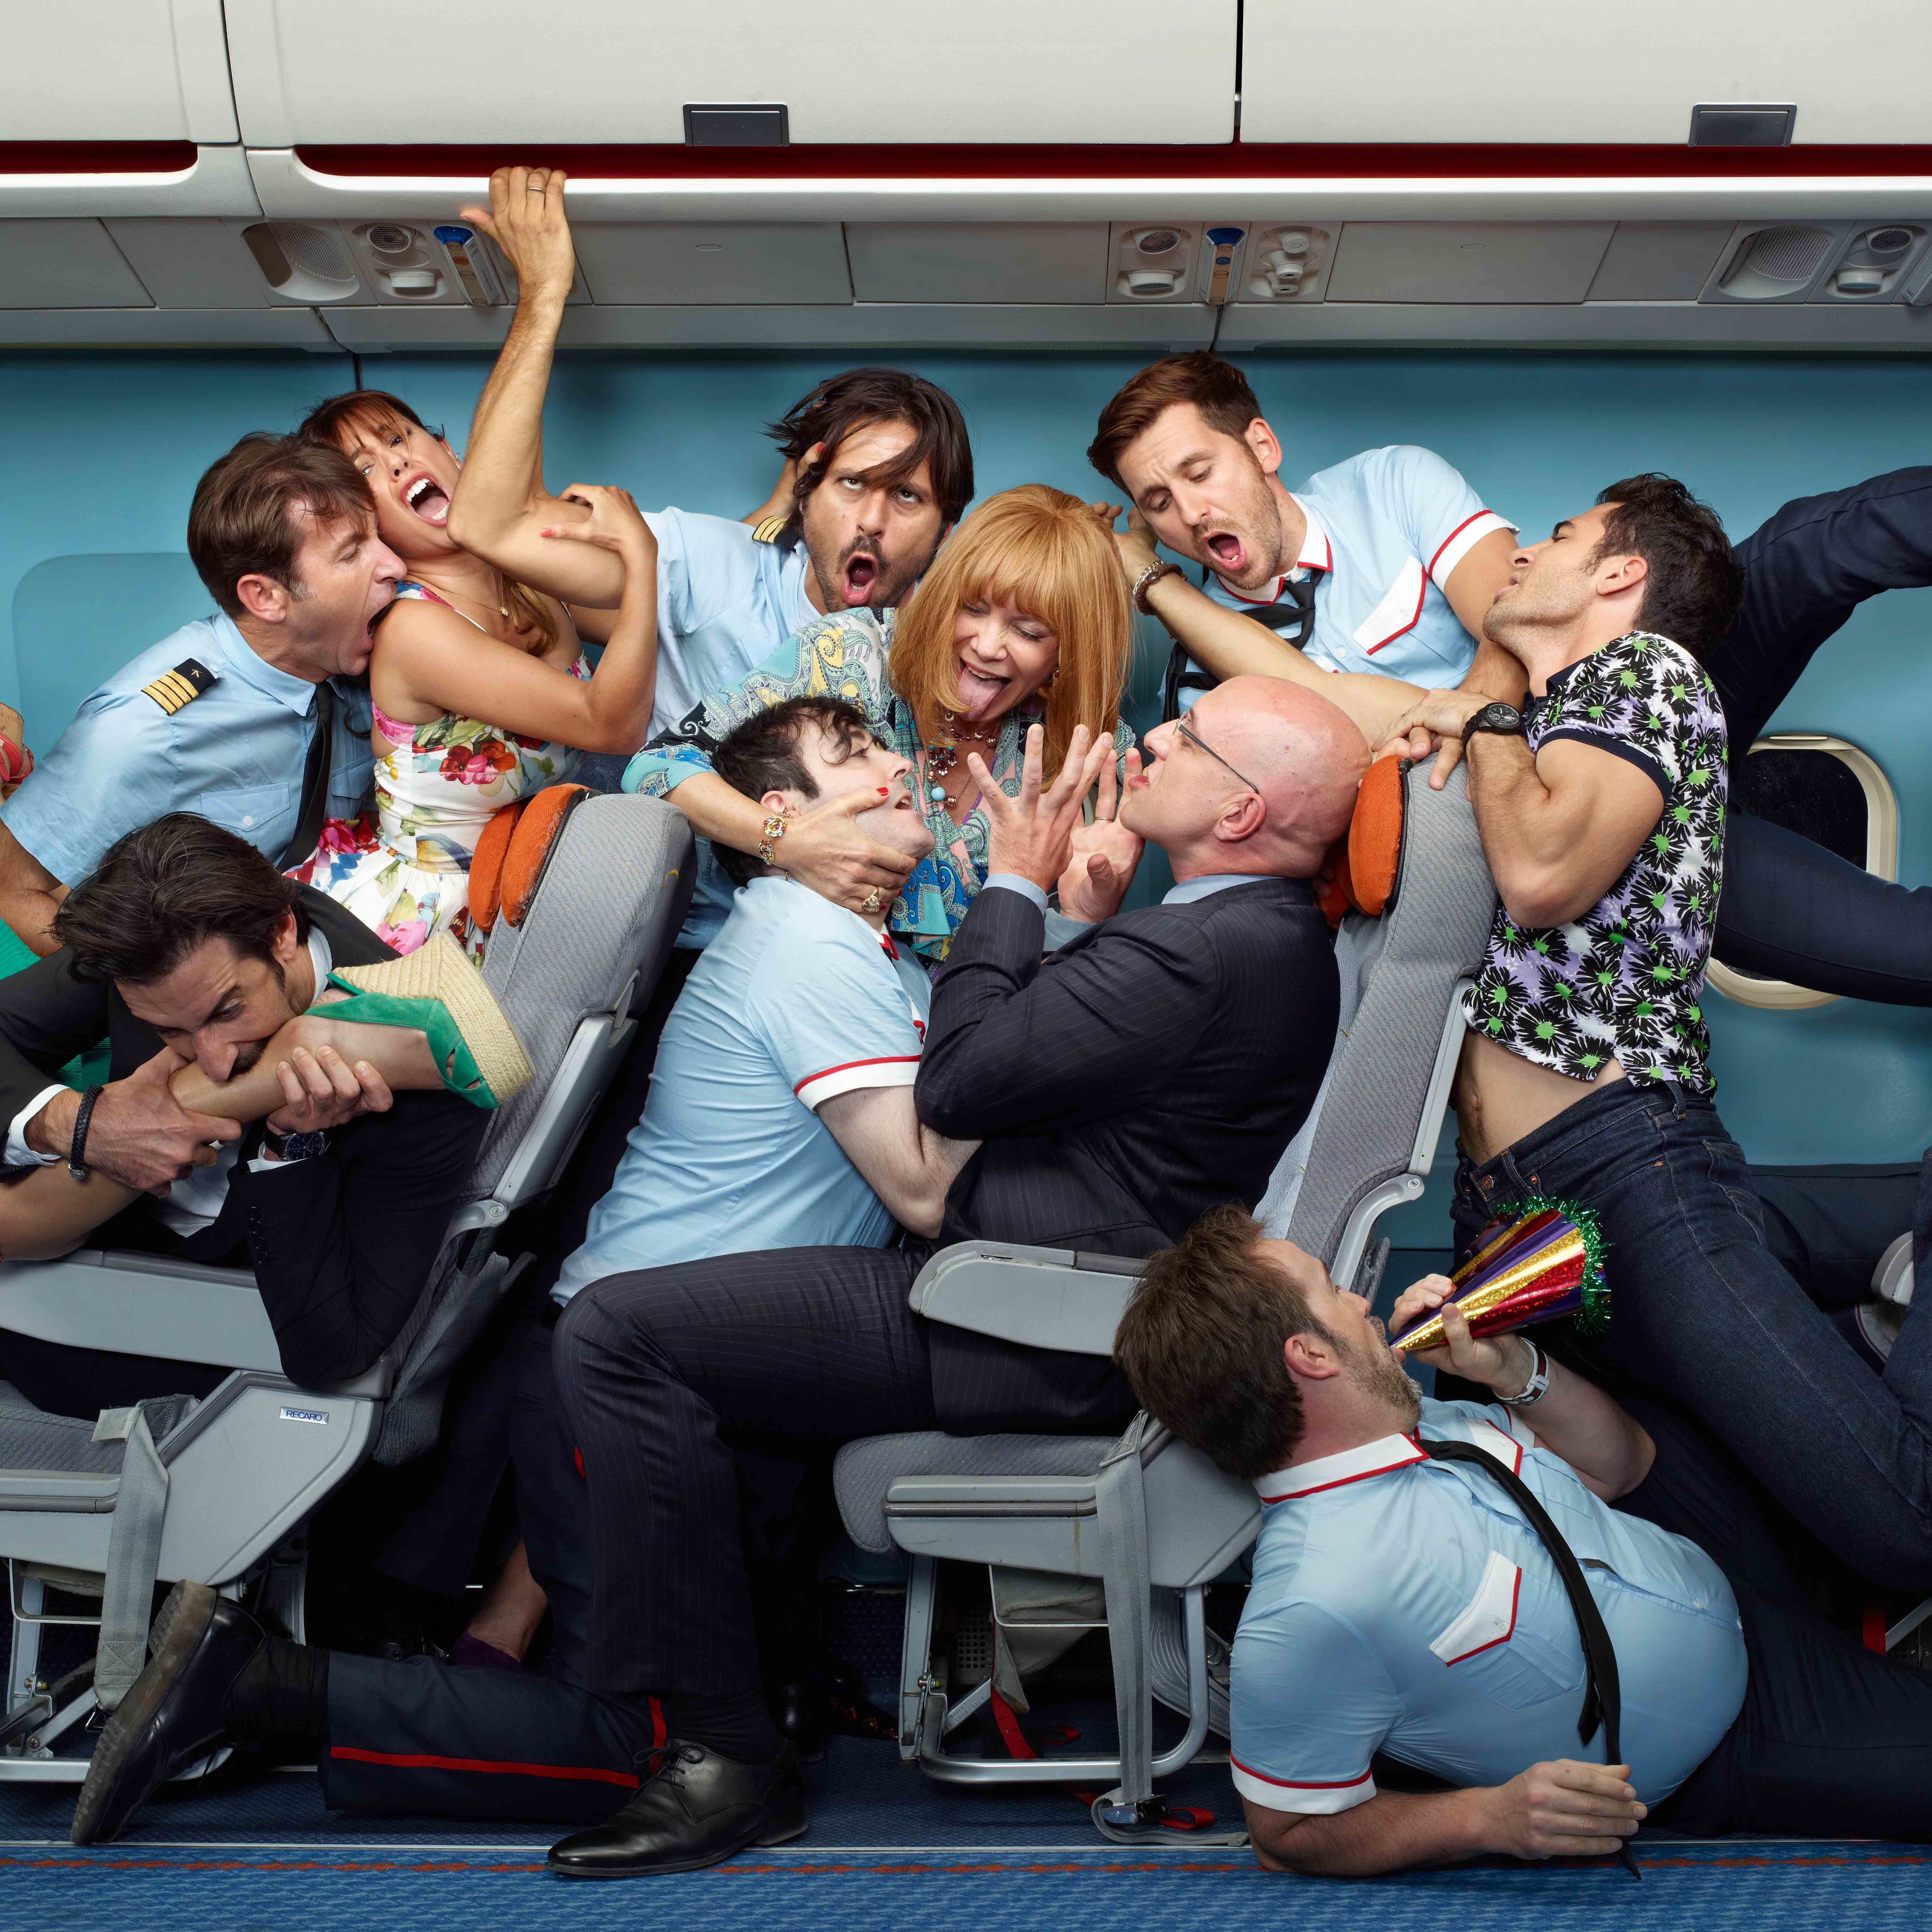 I'm So Excited, a candy-colored comedy from Spanish director Pedro Almodovar (at right), finds an eclectic assortment of highly strung passengers coping with an airborne emergency en route to Mexico City.